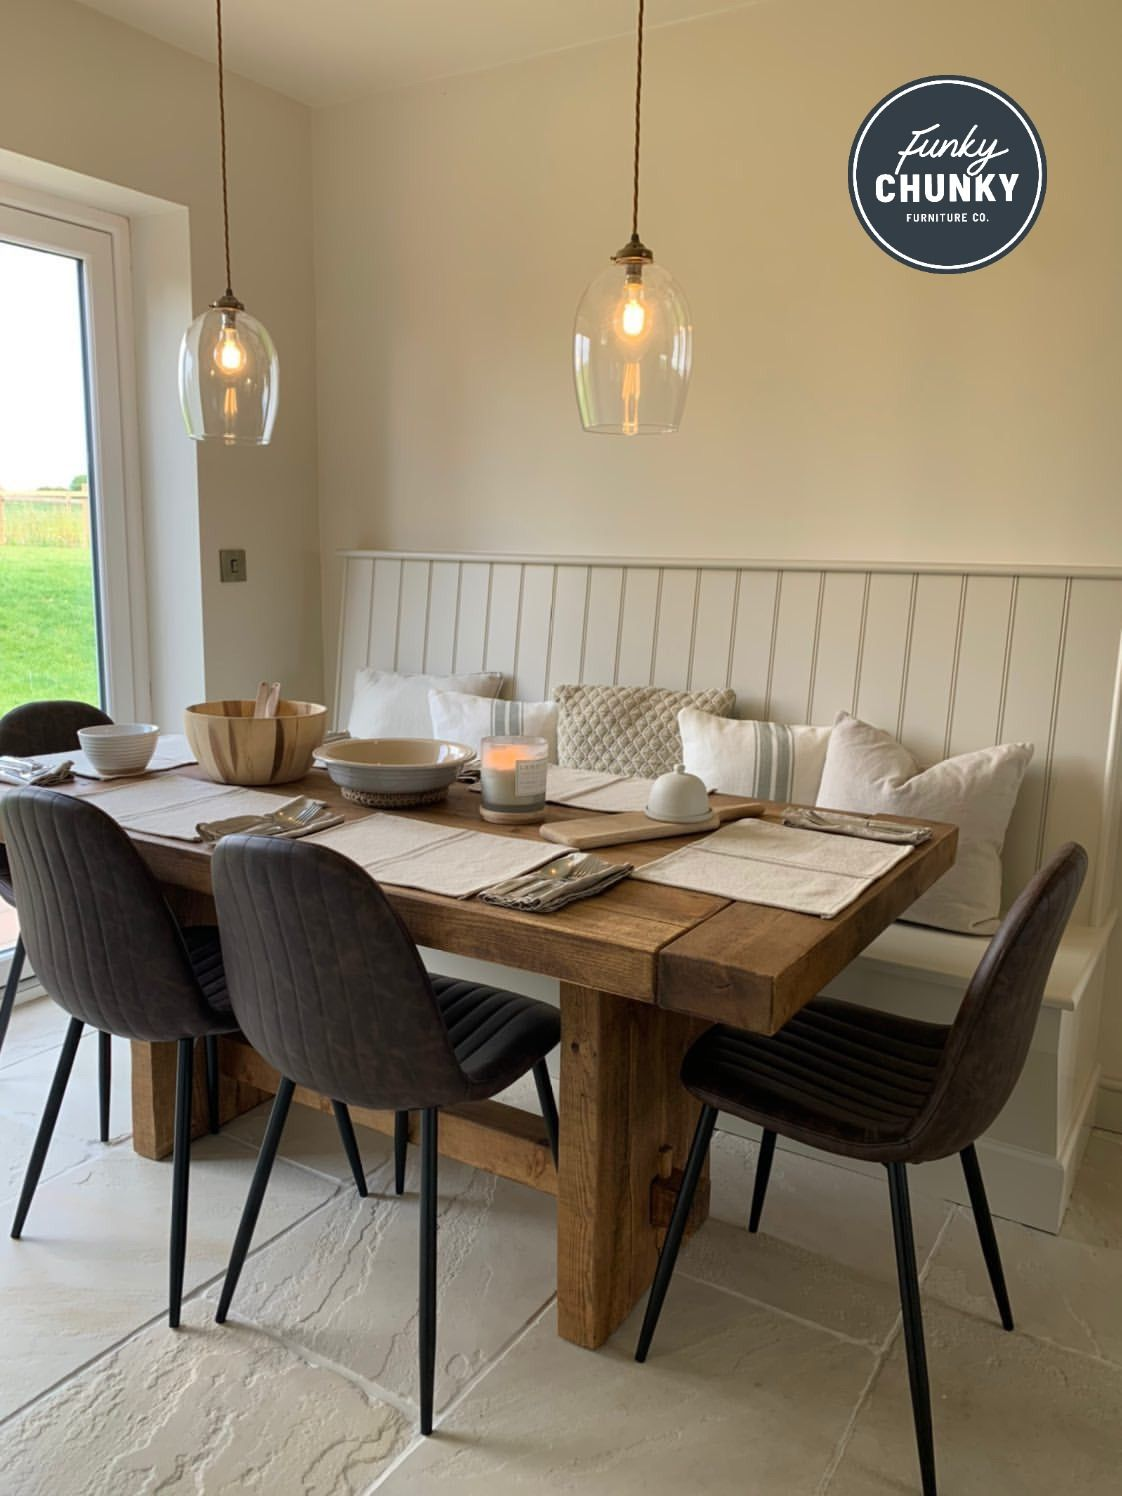 Derwent Dining Table Handmade In The Uk In 2020 Dining Table